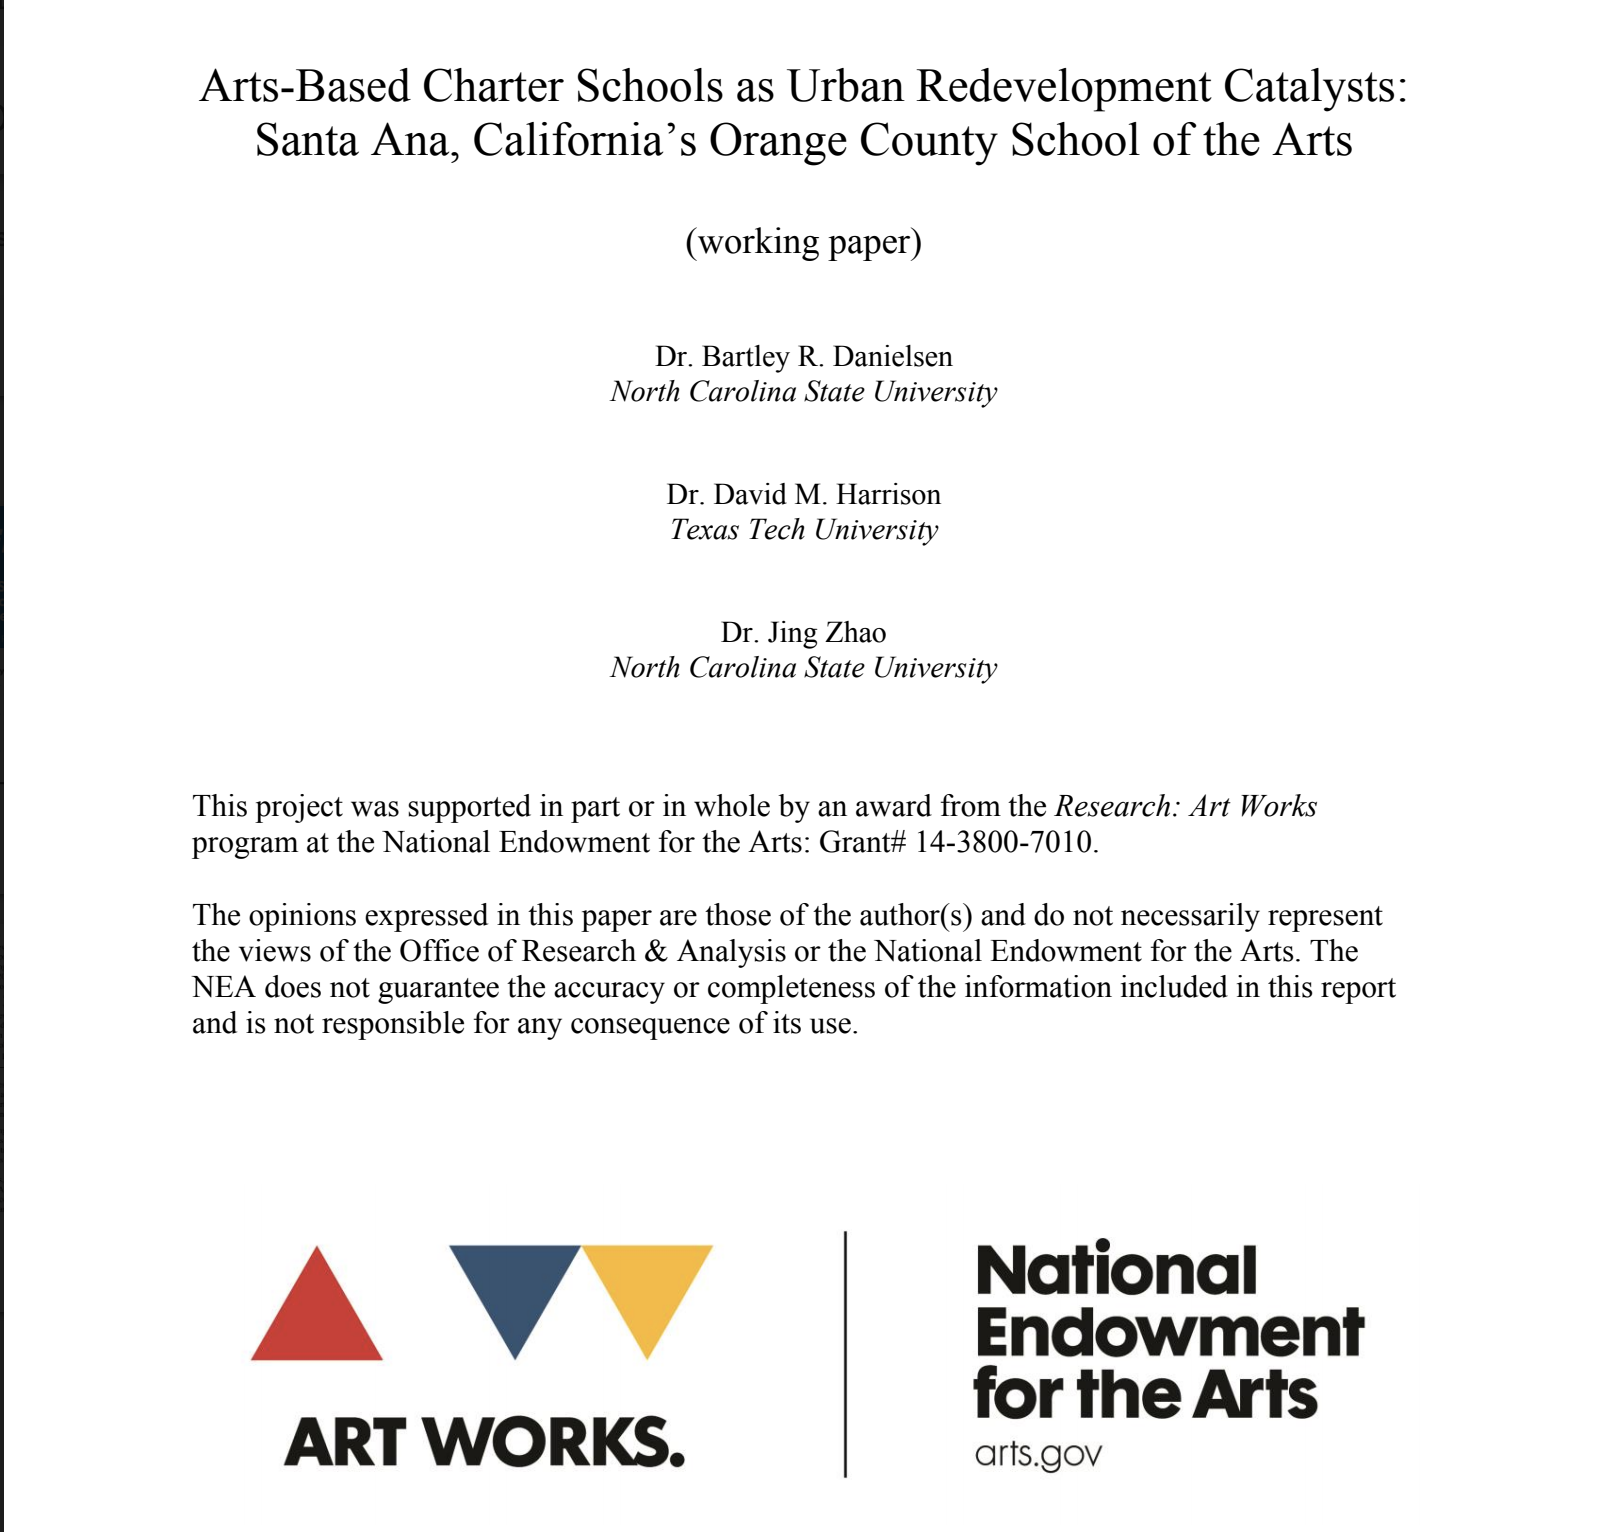 Arts-Based Charter Schools as Urban Redevelopment Catalysts